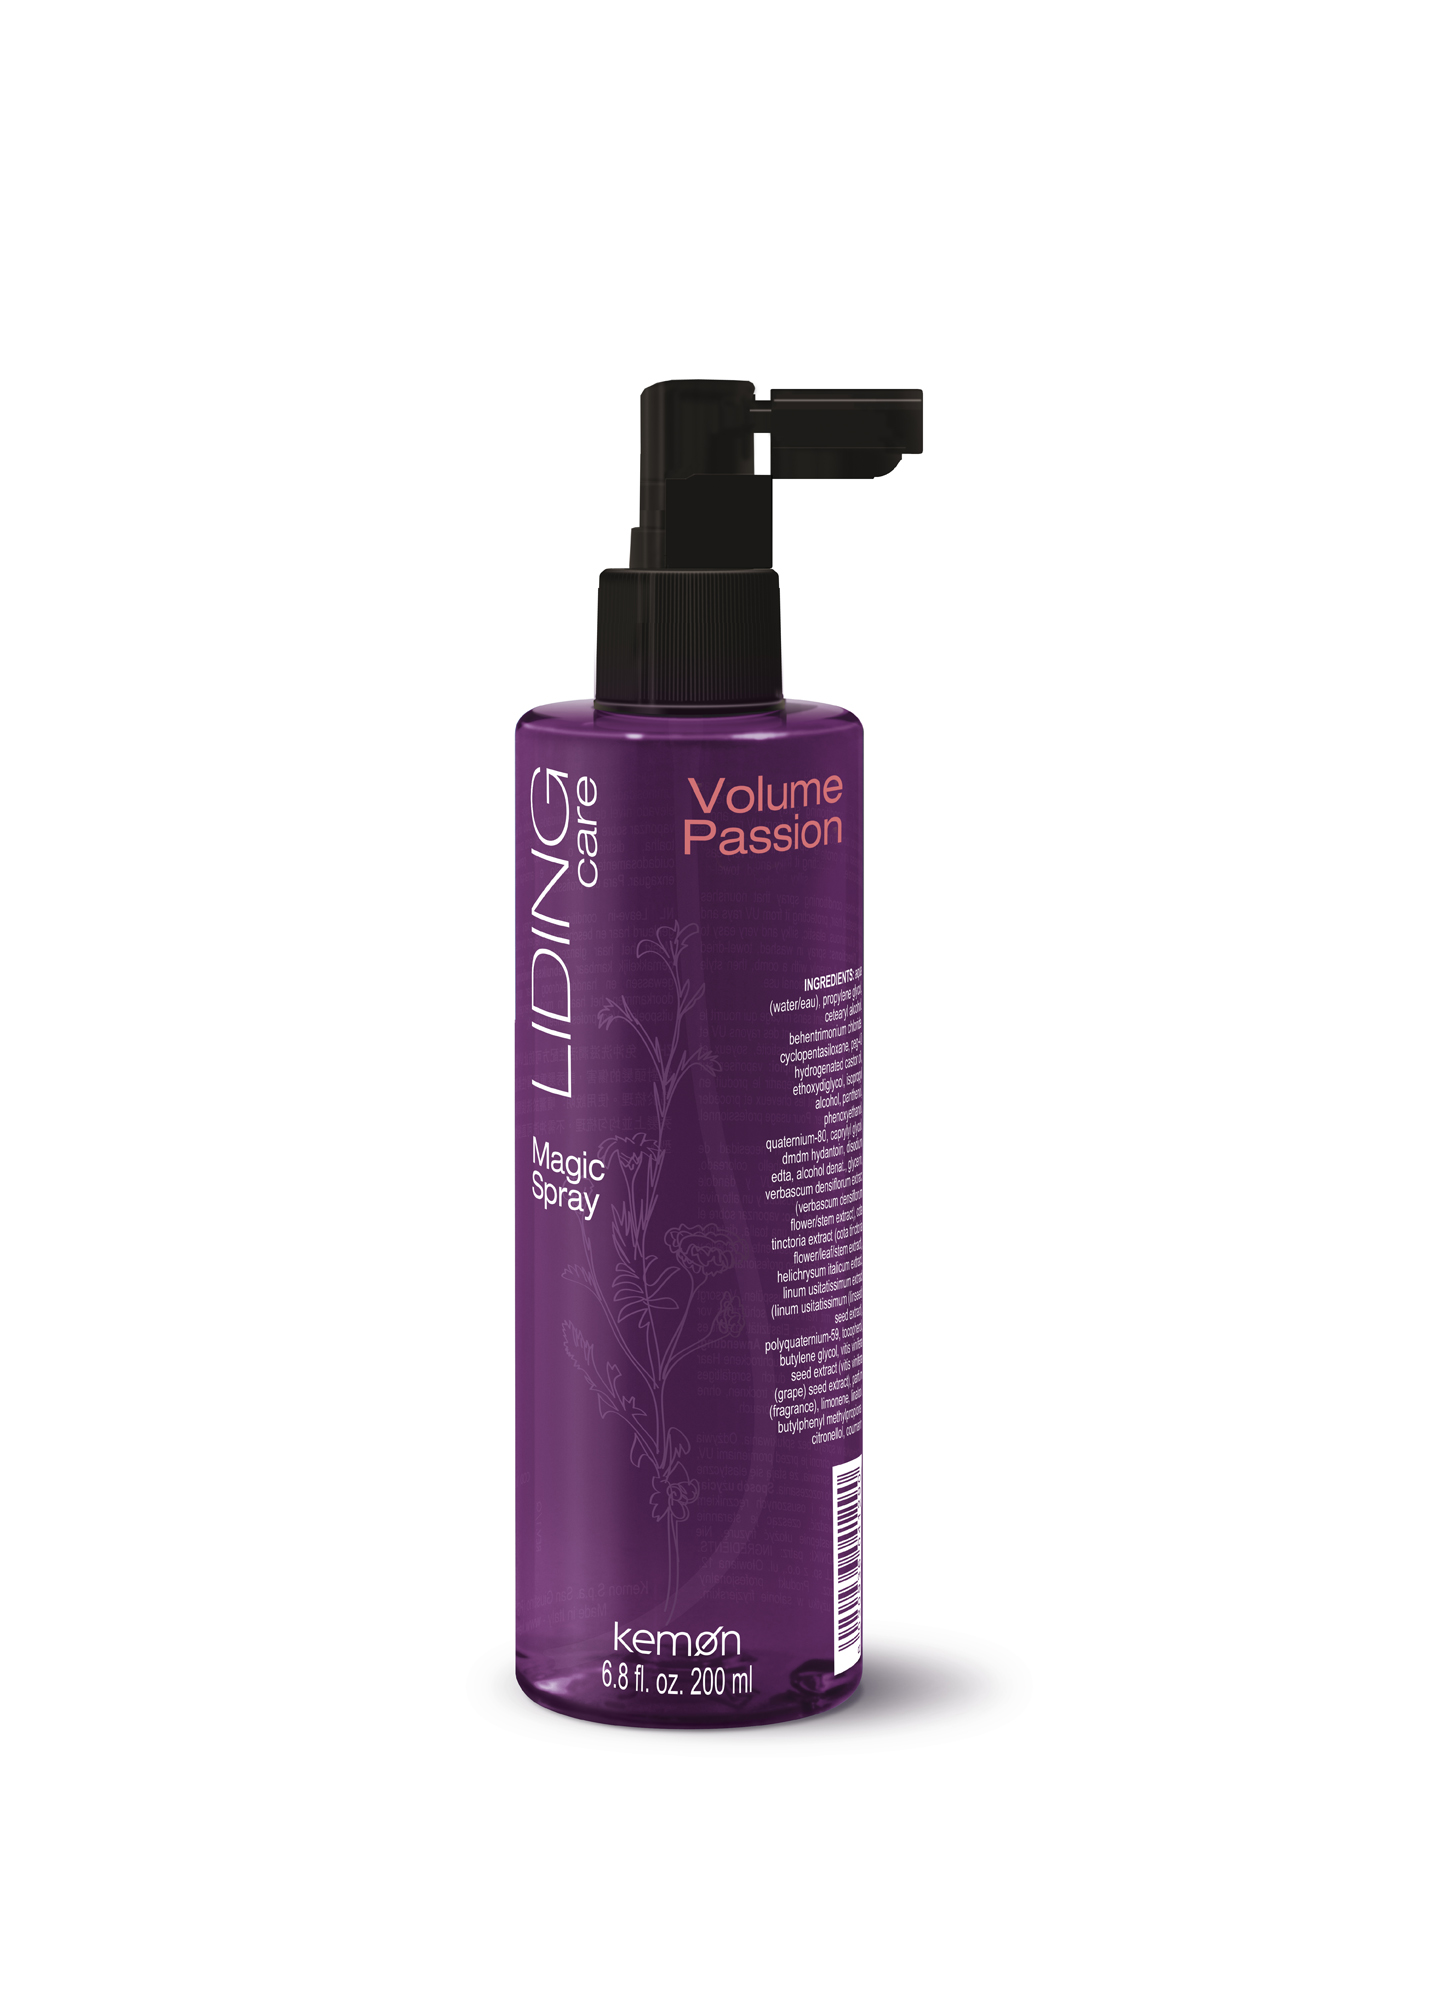 Volume Passion Magic Spray - 200ml